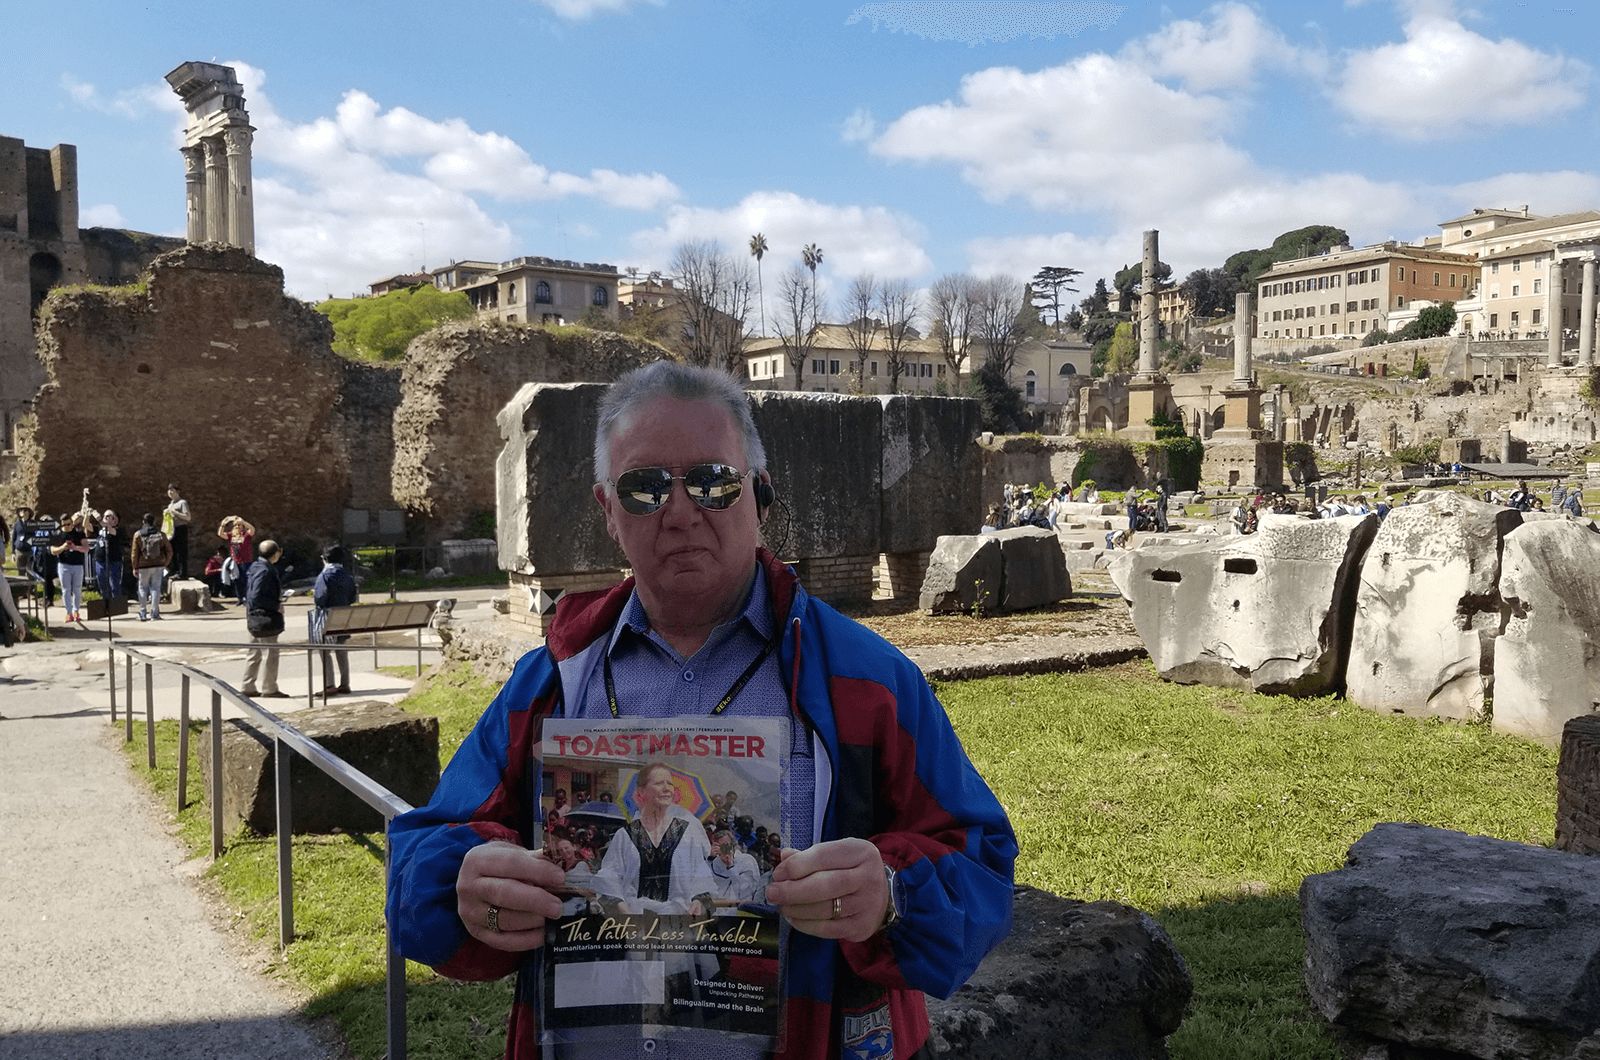 Bob Hooey, A.S, DTM, of Egremont, Alberta, Canada, stands in the Roman Forum in Rome, Italy. The rectangular forum sits at the center of the city and is filled with ruins of several ancient government buildings.